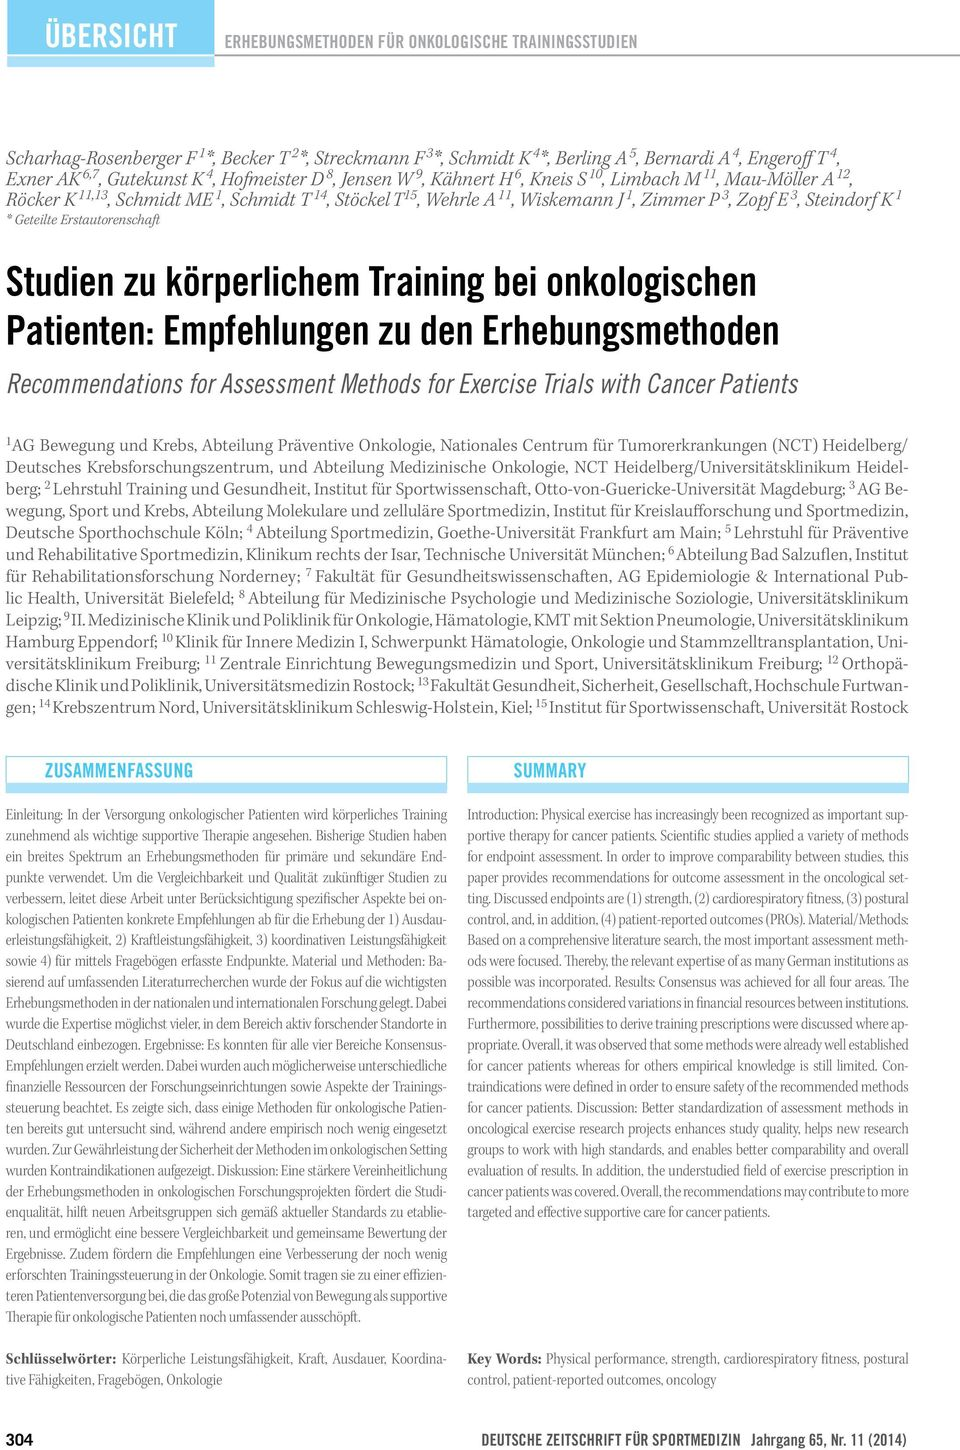 Zopf E 3, Steindorf K 1 * Geteilte Erstautorenschaft Studien zu körperlichem Training bei onkologischen Patienten: Empfehlungen zu den Erhebungsmethoden Recommendations for Assessment Methods for